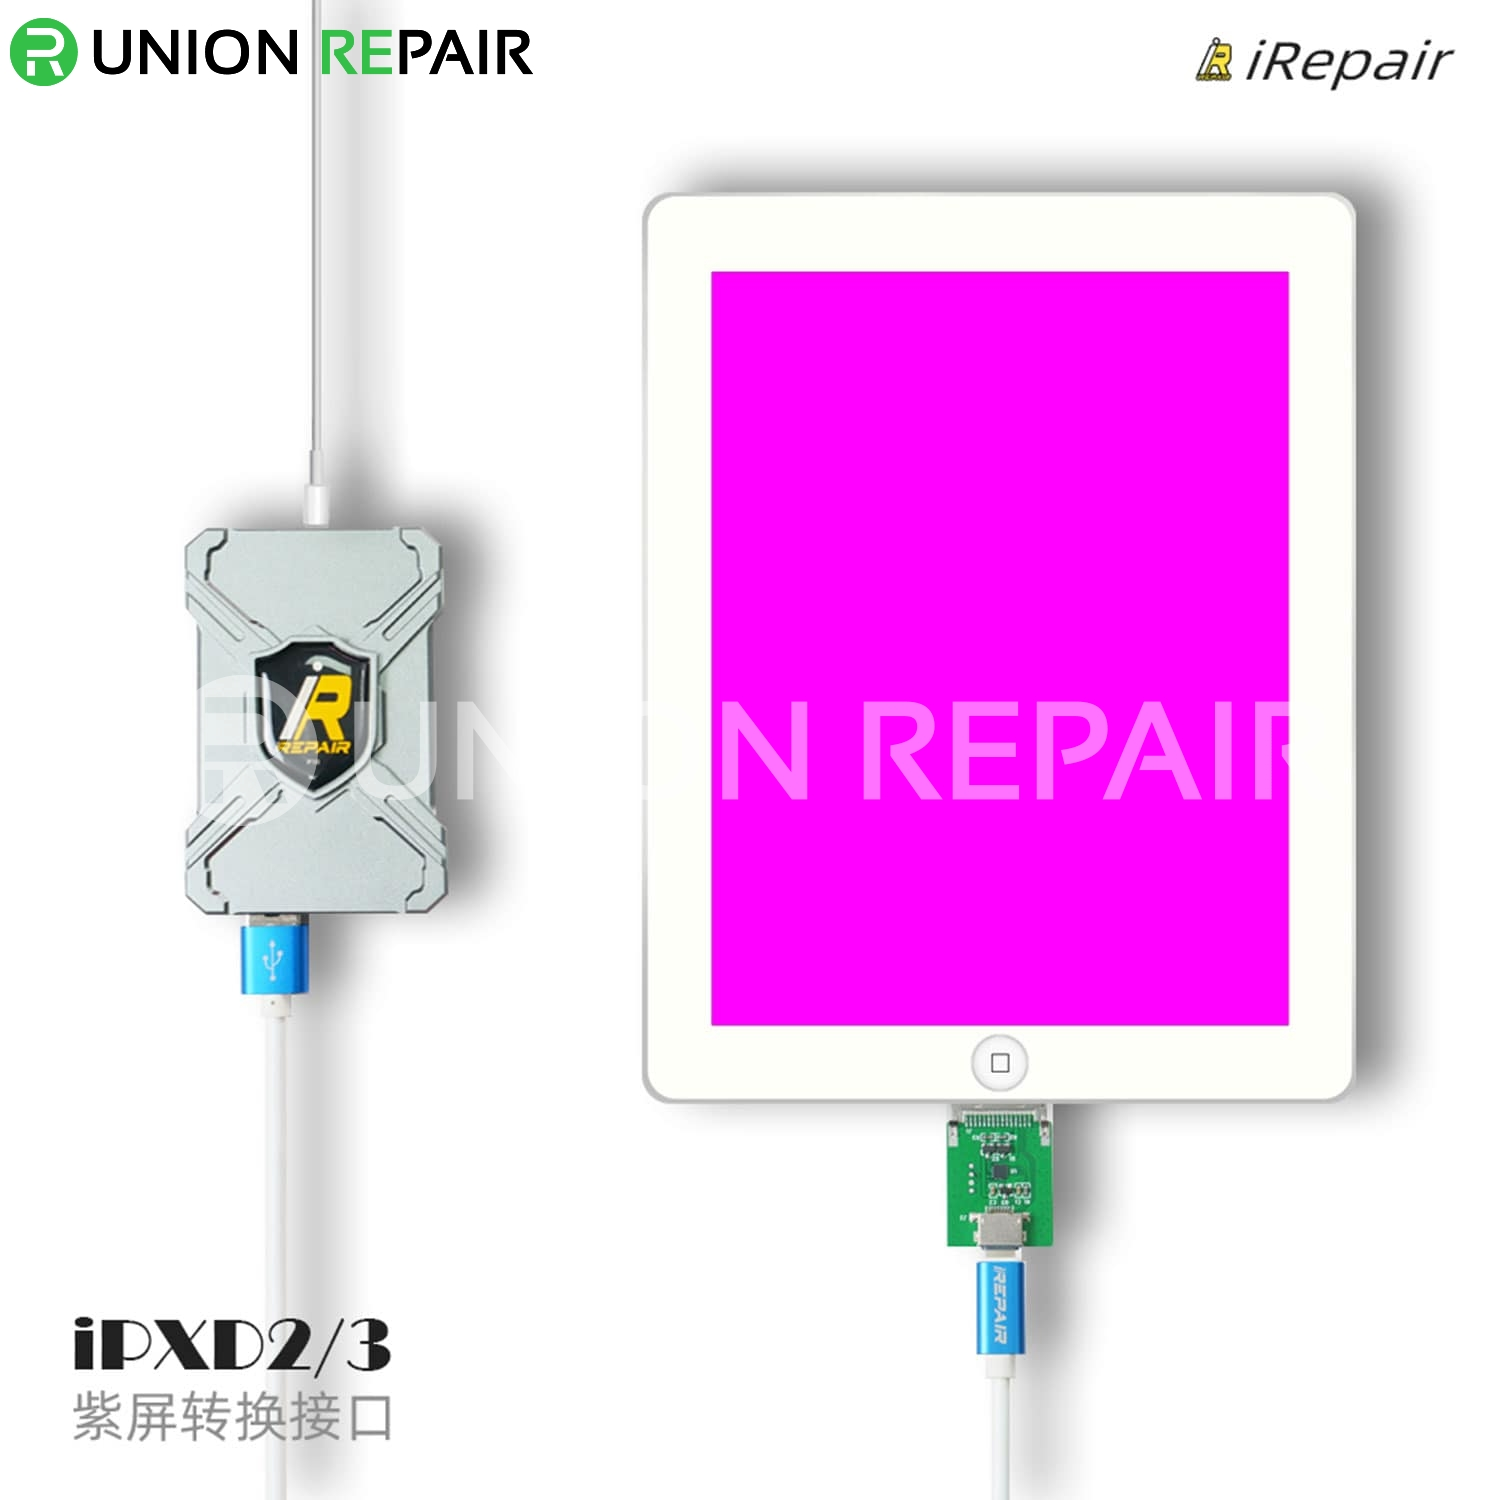 iPXD 2/3 Adapter for iRepair P10 DFU Box